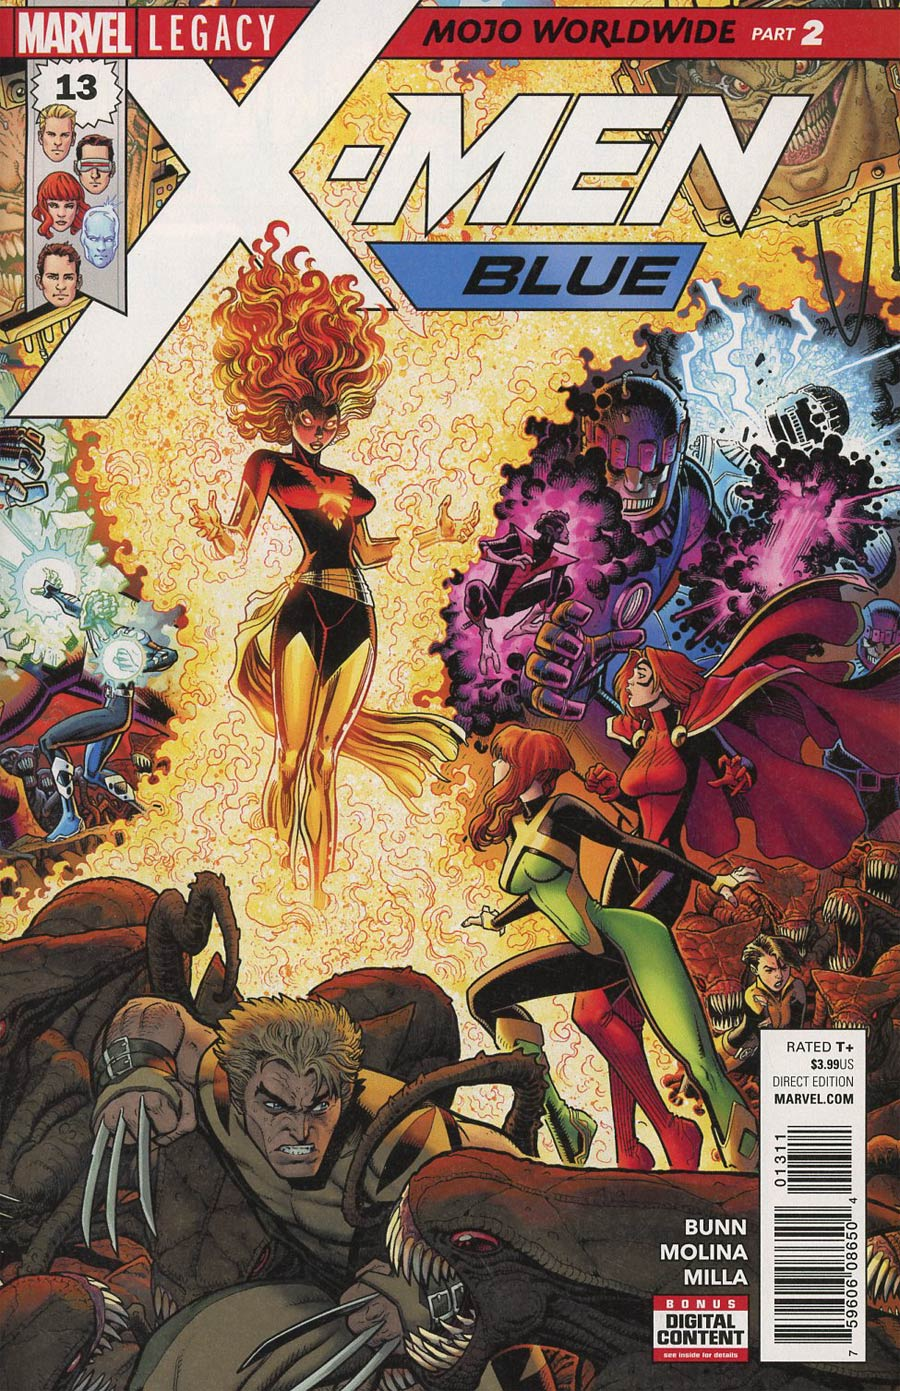 X-Men Blue #13 Cover A 1st Ptg Regular Arthur Adams Connecting B Cover (Mojo Worldwide Part 2)(Marvel Legacy Tie-In)